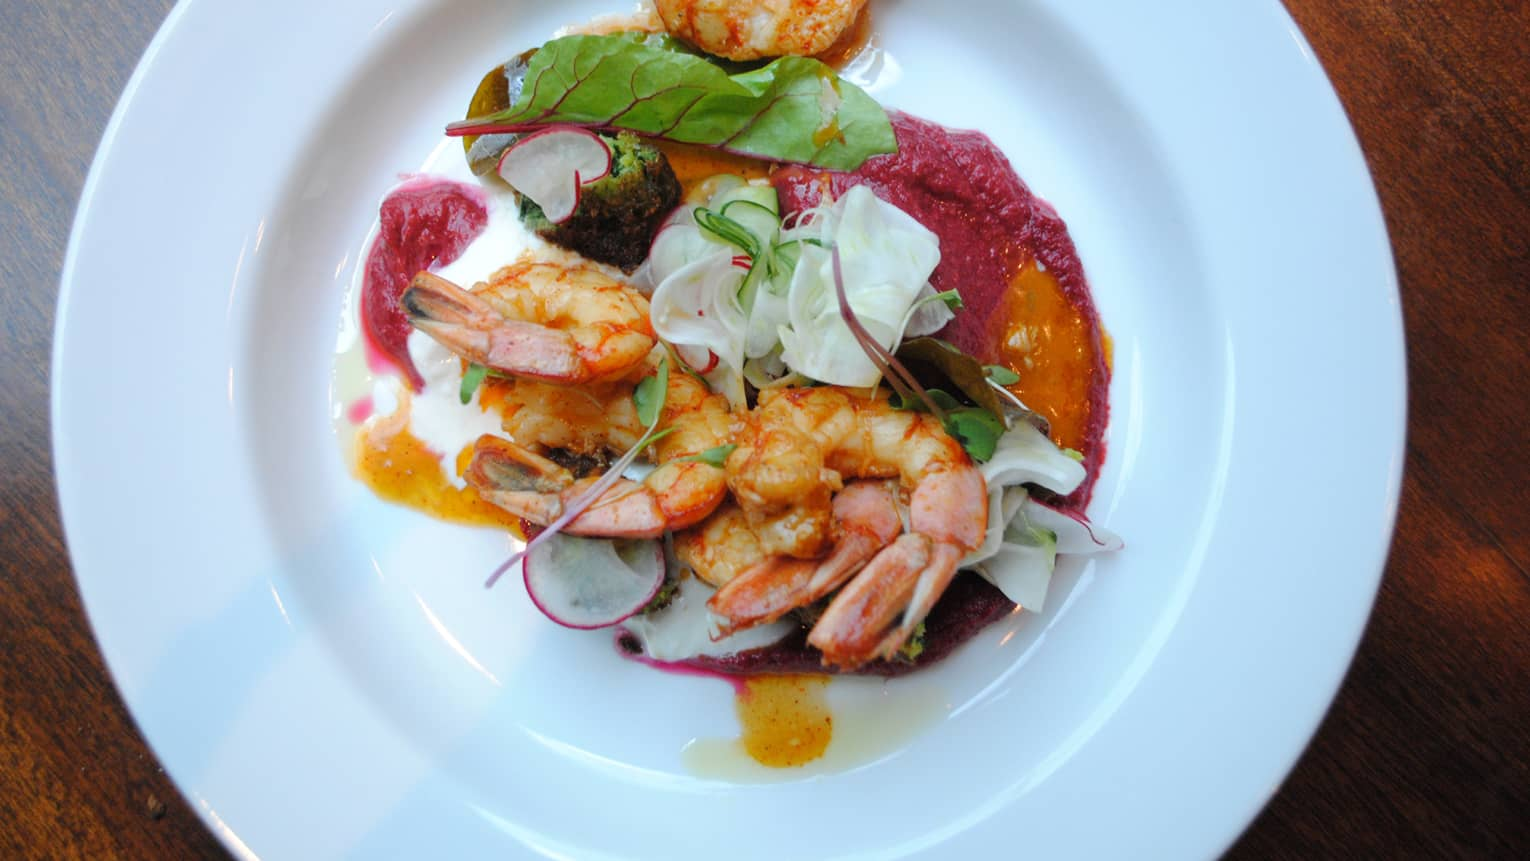 A shrimp dish is served with radishes, greens and a creamy sauce